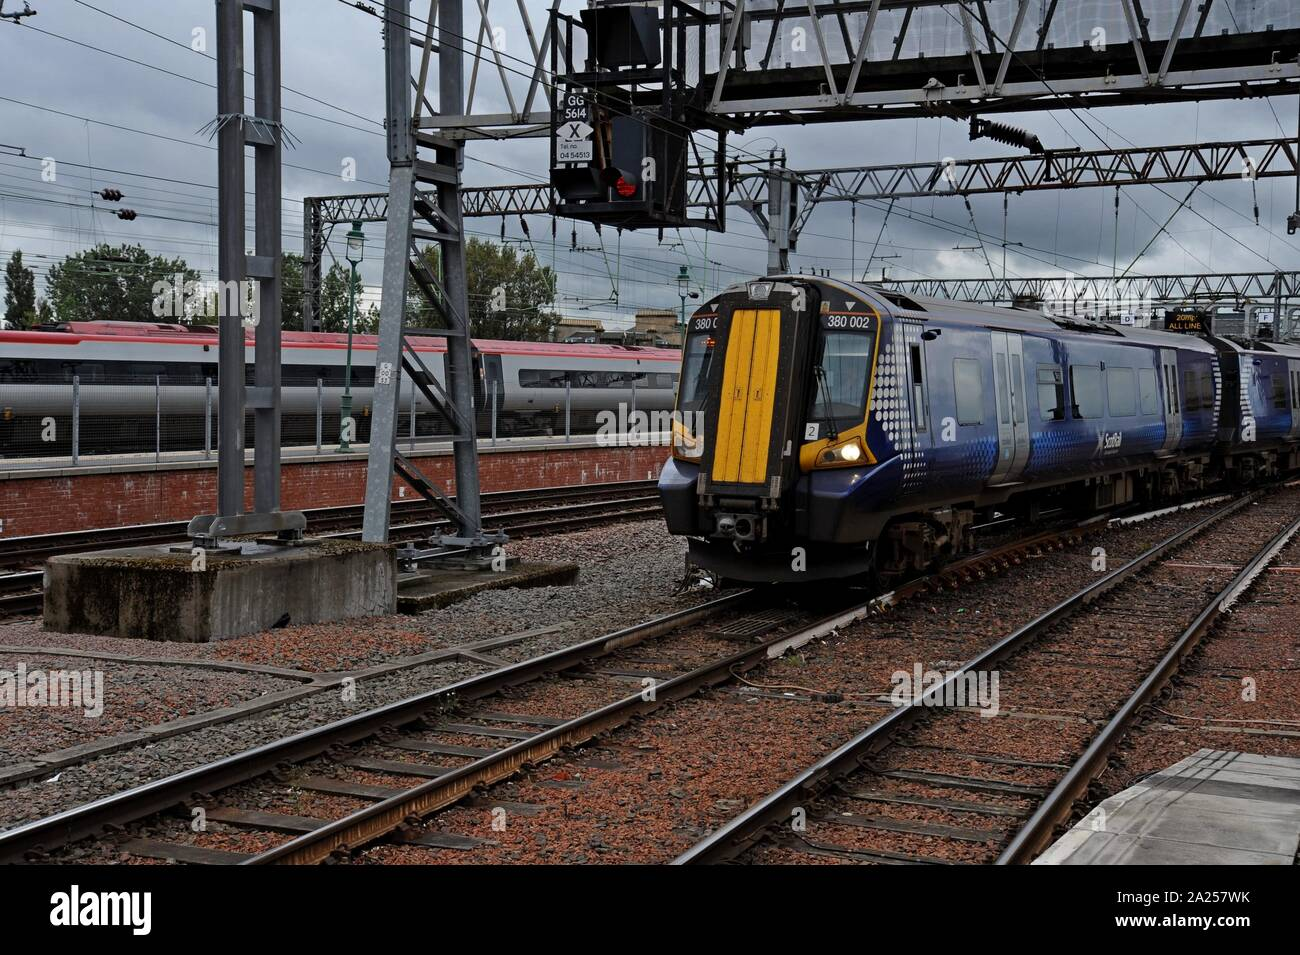 Scotrail Class 380 Desiro electric trains leaving Glasgow Central Station Stock Photo